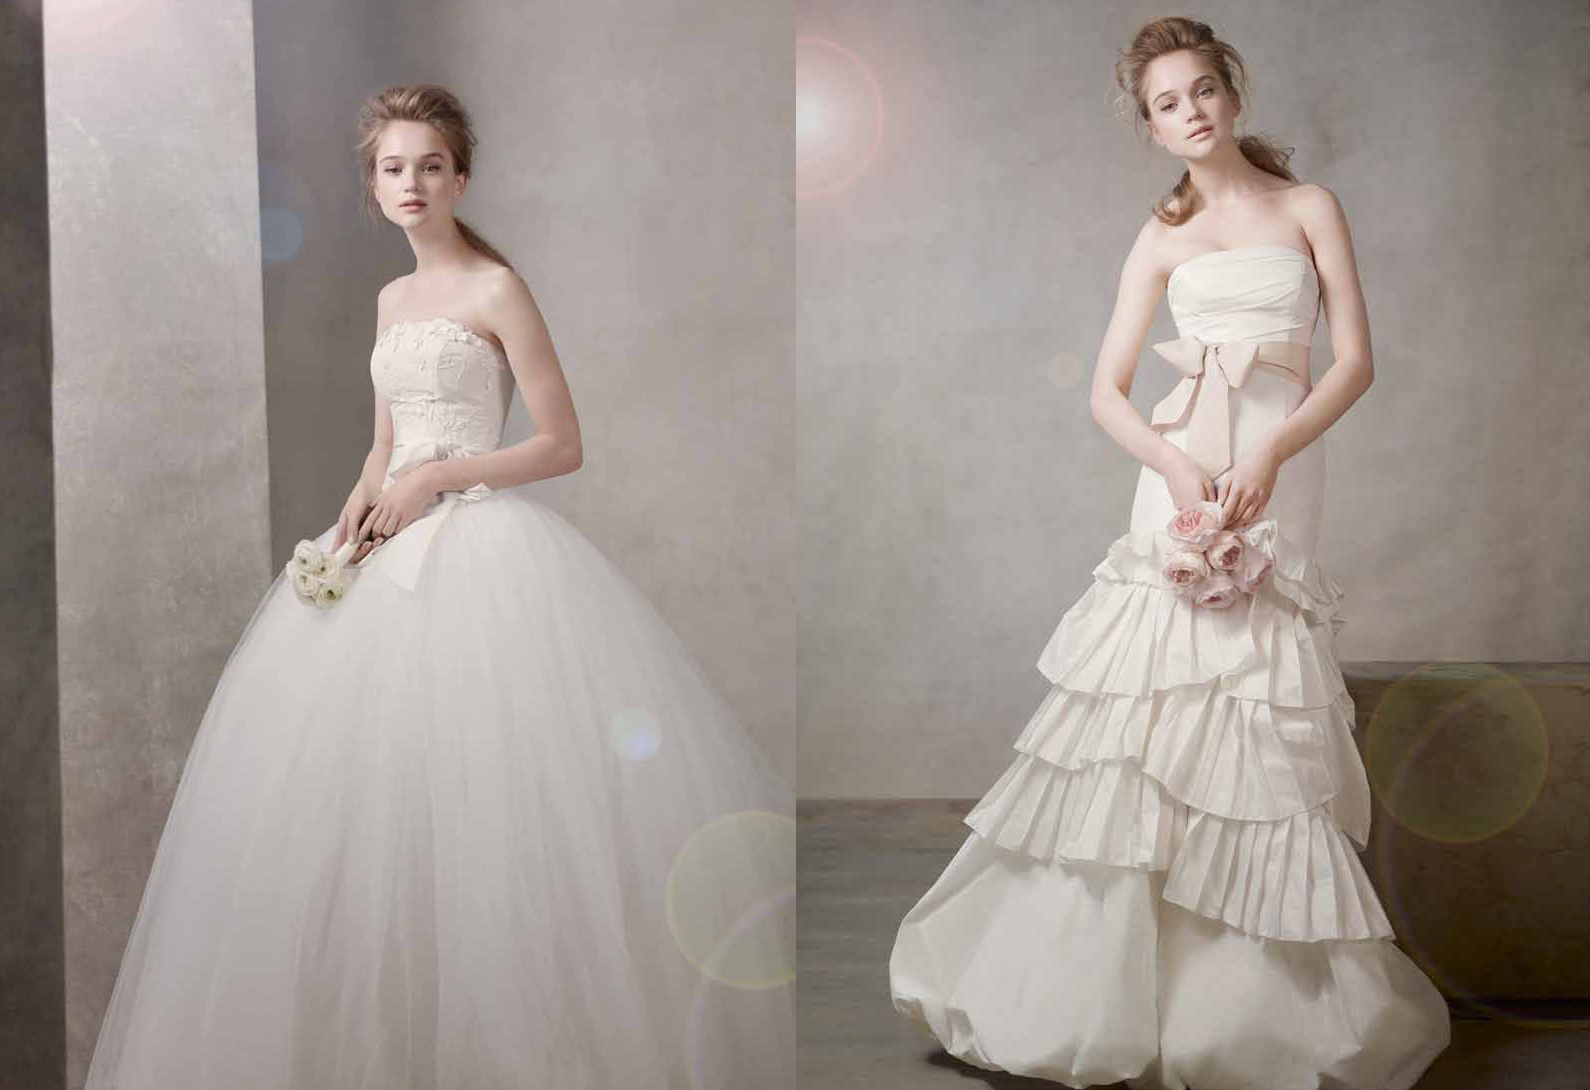 Vintage vera wang wedding dresses cheap wedding dresses for White vera wang wedding dresses